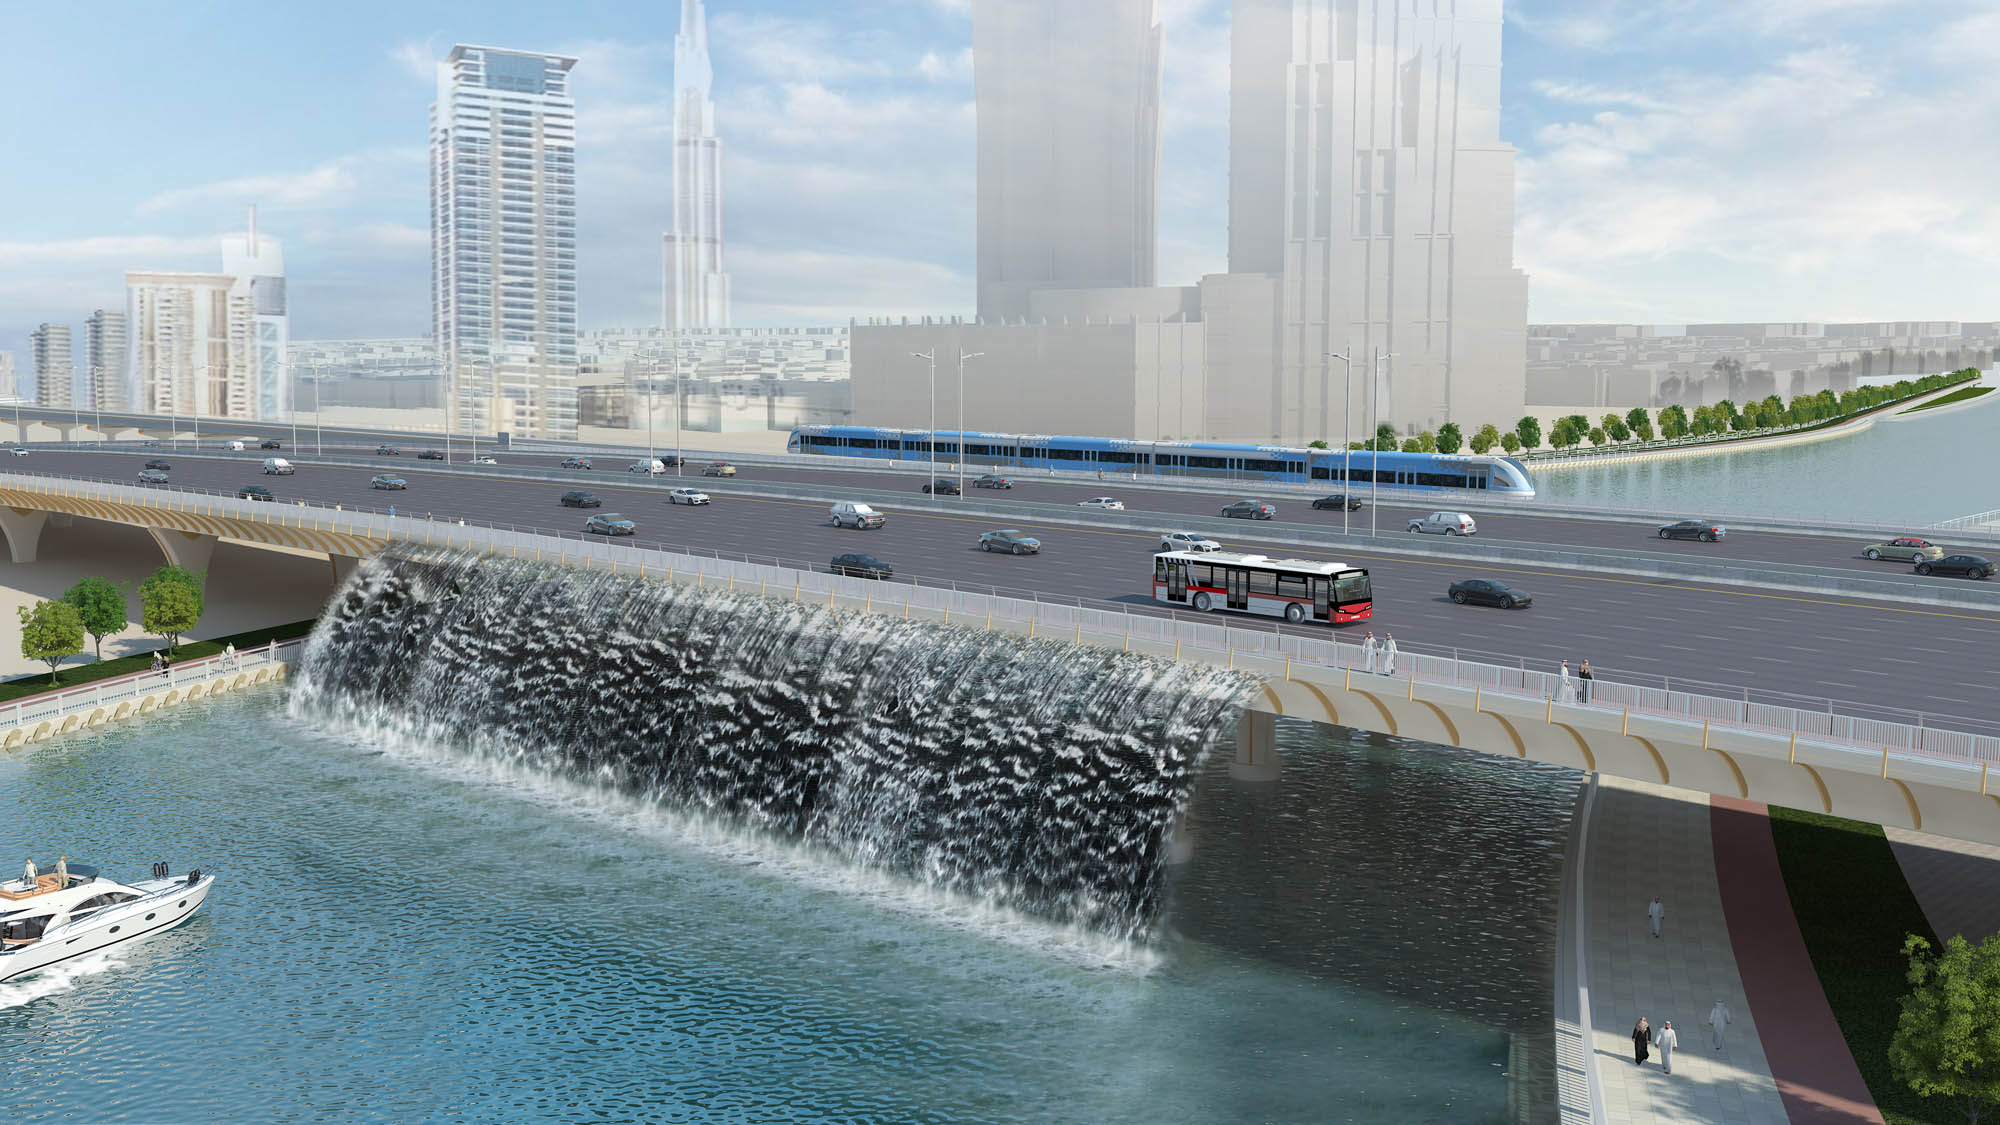 Dubai Canal Bridge